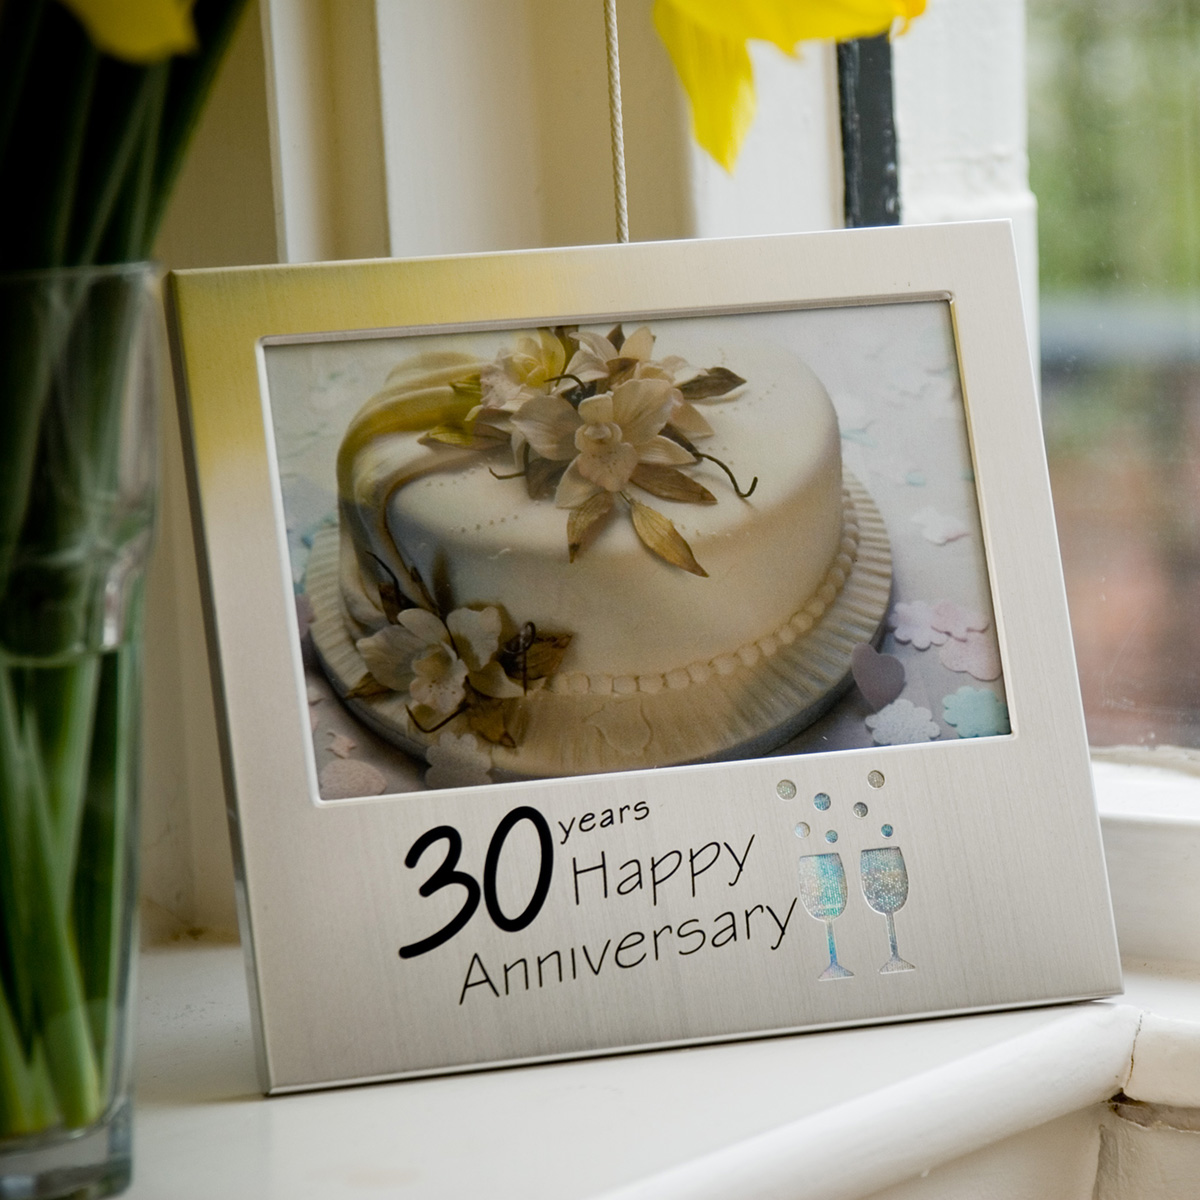 30th Wedding Anniversary Gift Ideas For Friends : 30th Anniversary Frame :: Pearl Anniversary Gifts from GettingPersonal ...